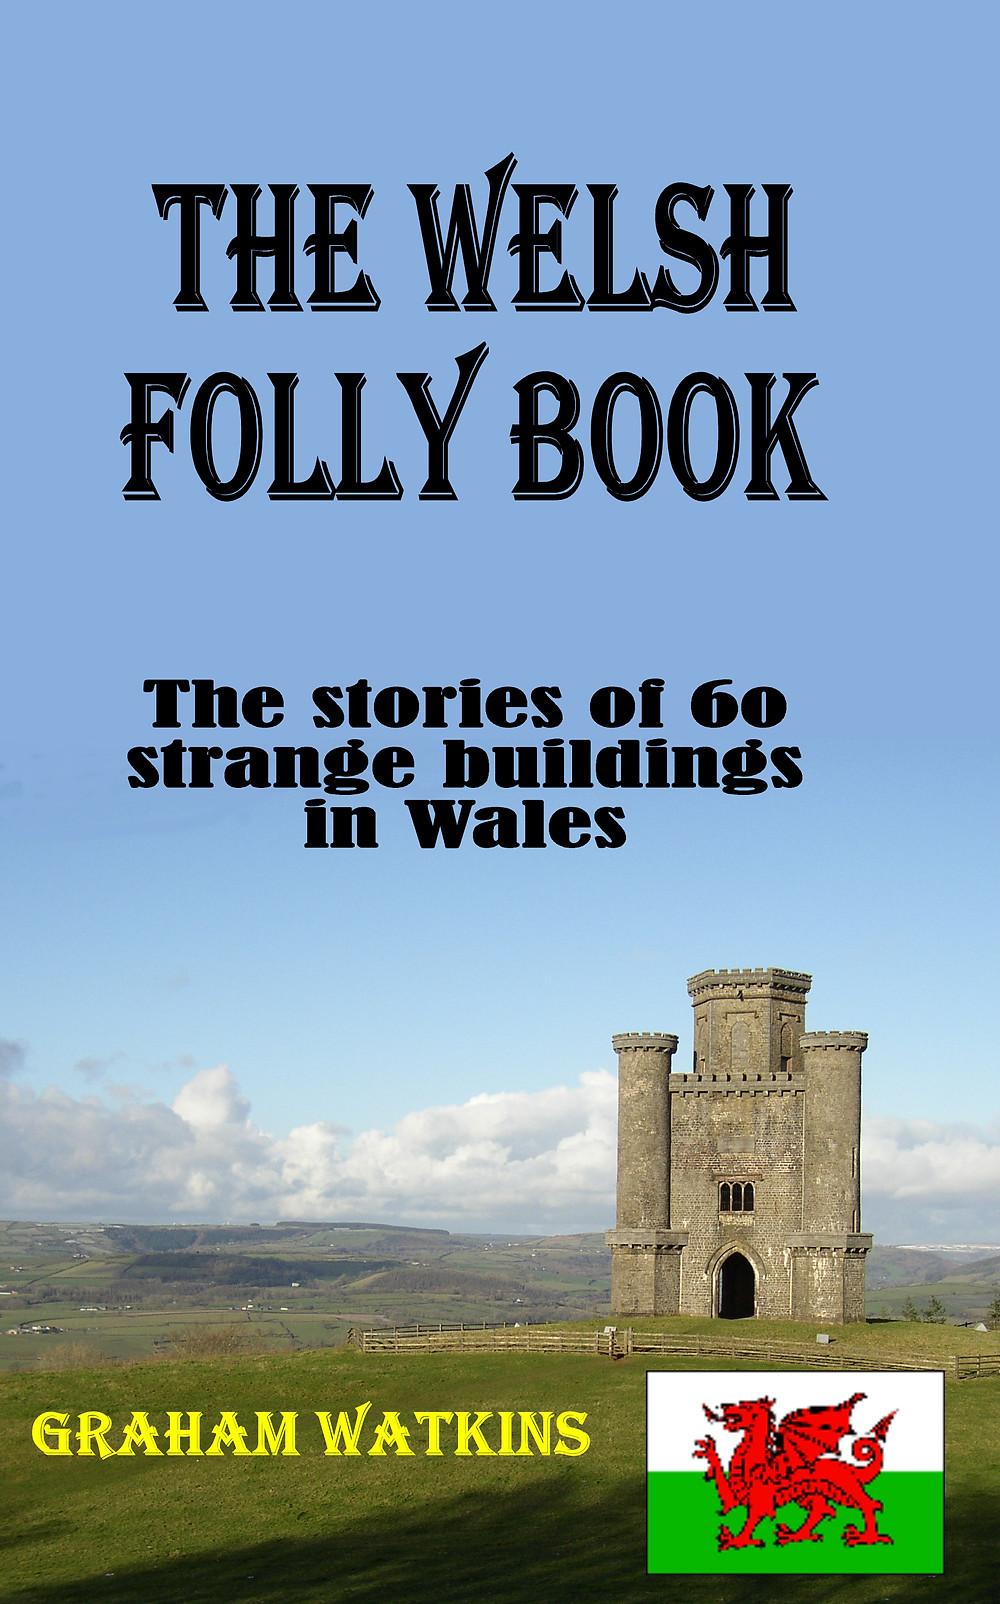 Welsh follies, folly